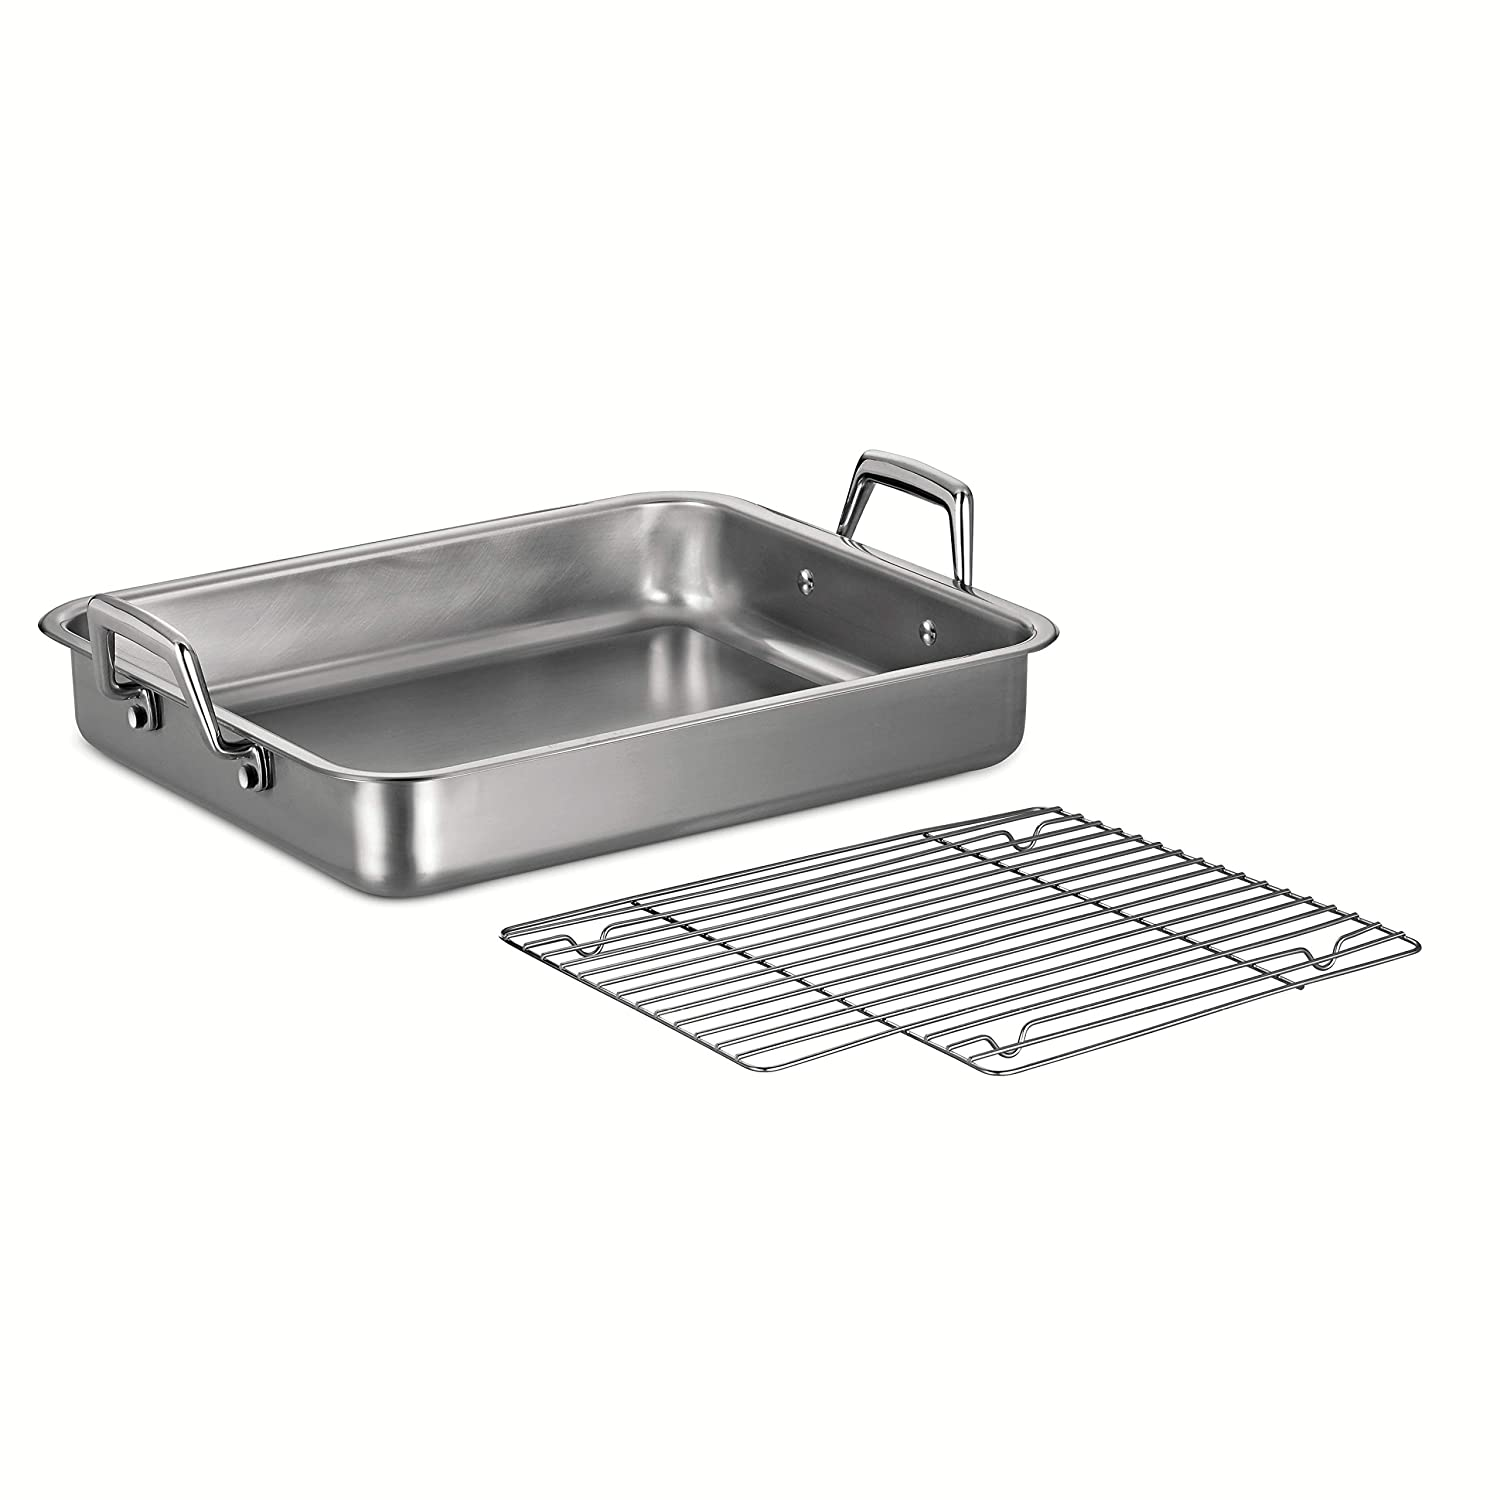 Tramontina 80203/004DS Gourmet Prima Rectangular Stainless Steel Roasting Pan with Basting Grill, 15-Inch, Made in Brazil